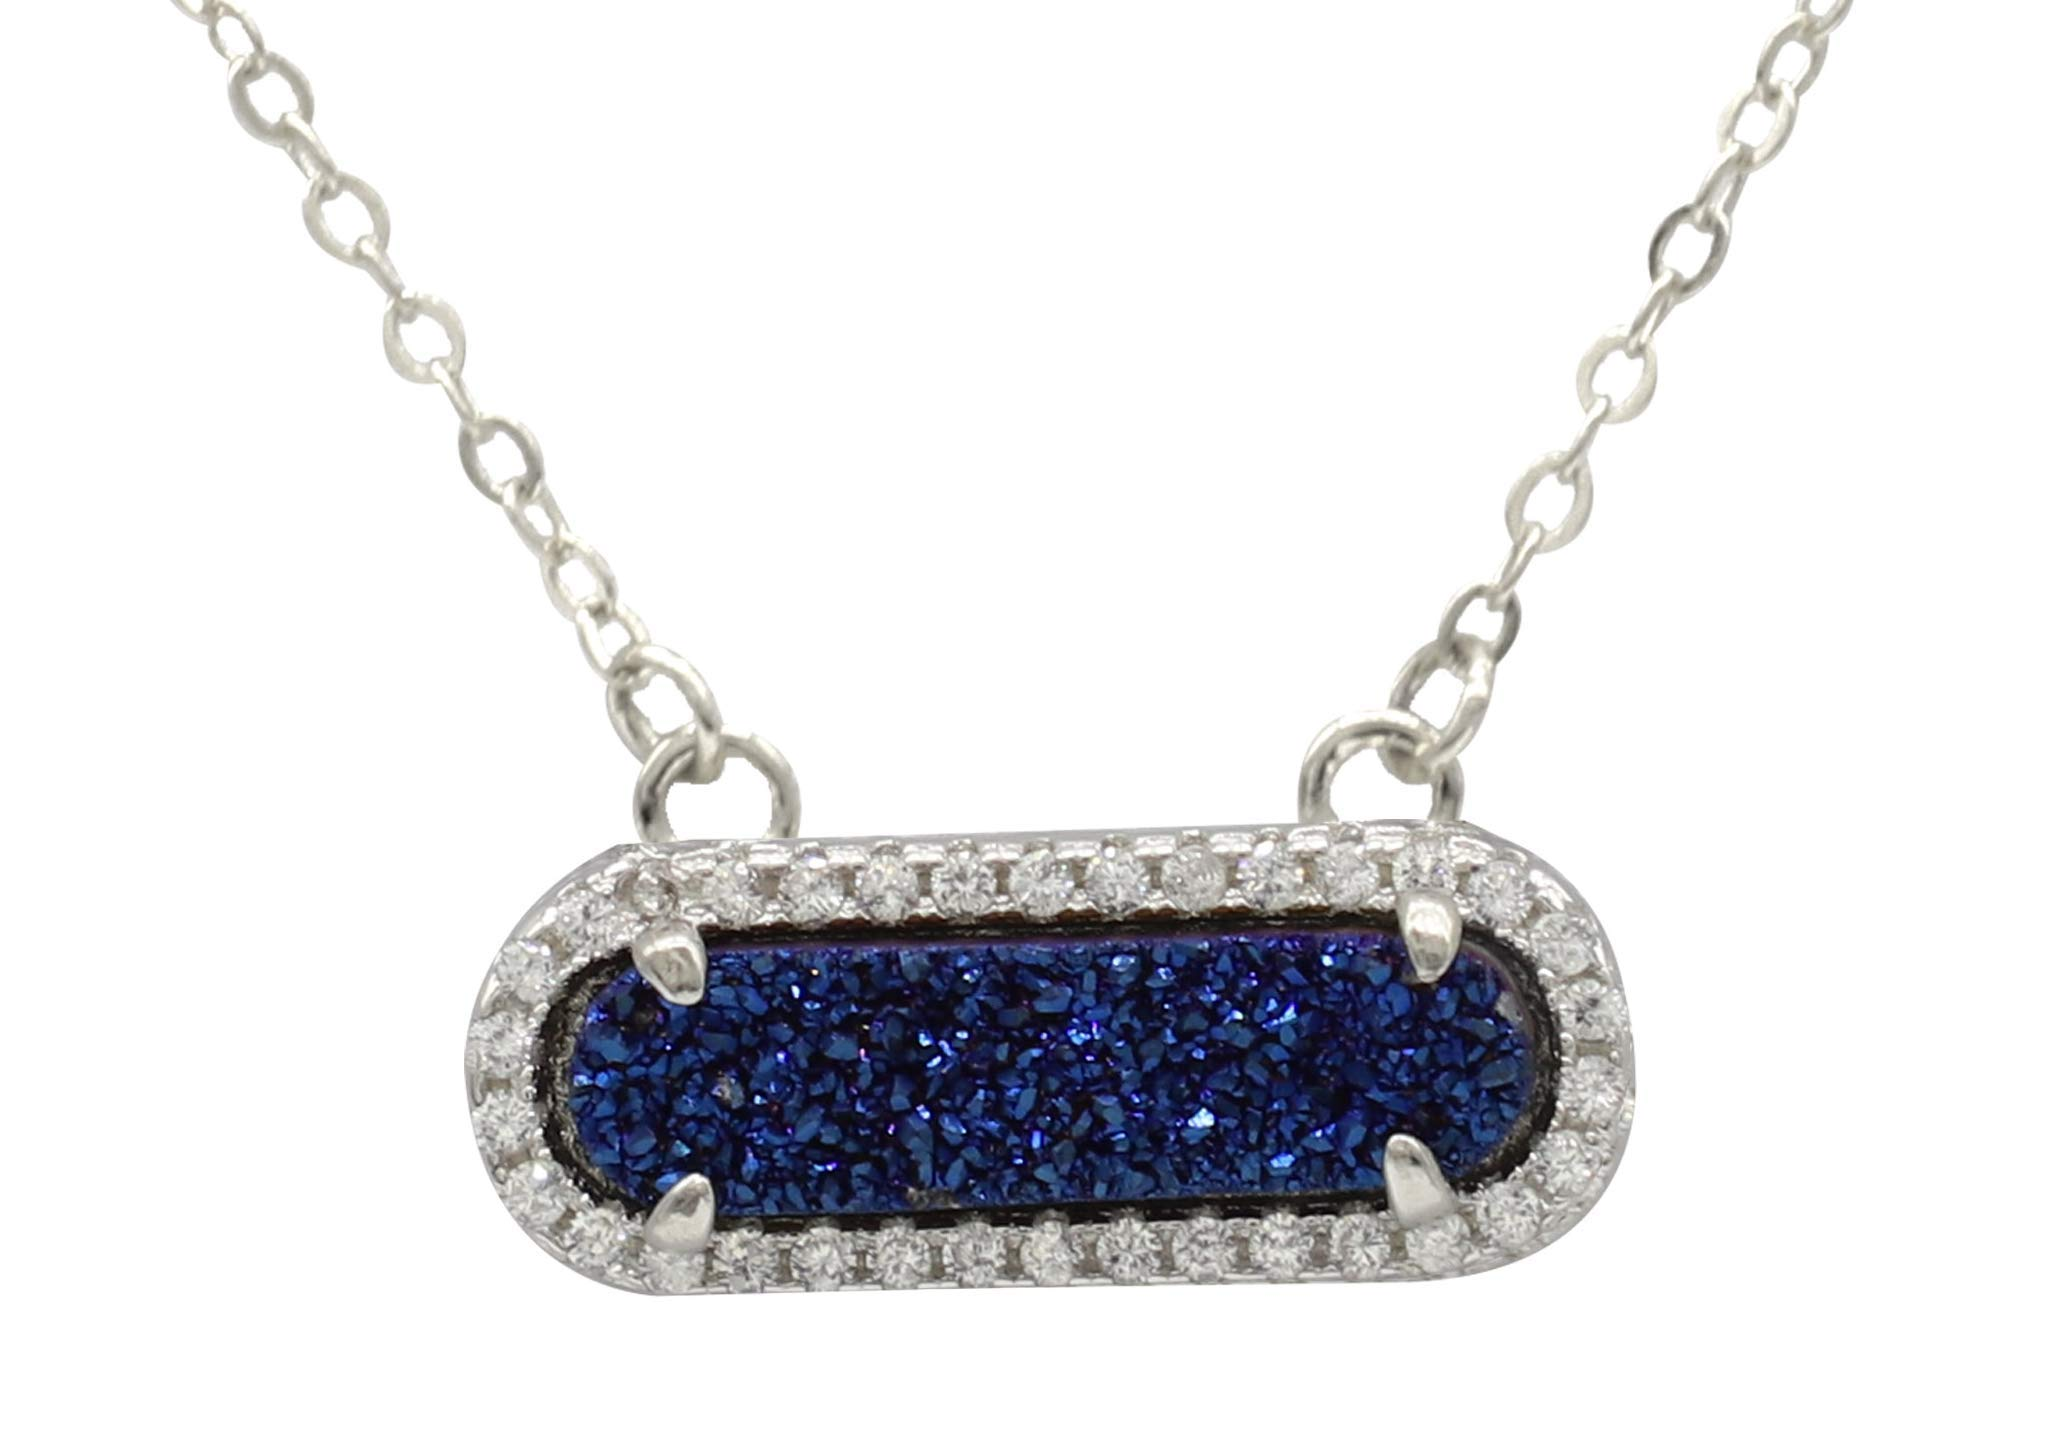 MAQ Queen Collection Druzy Necklace - Natural Titanium Blue Drusy for Women by M-A-Q